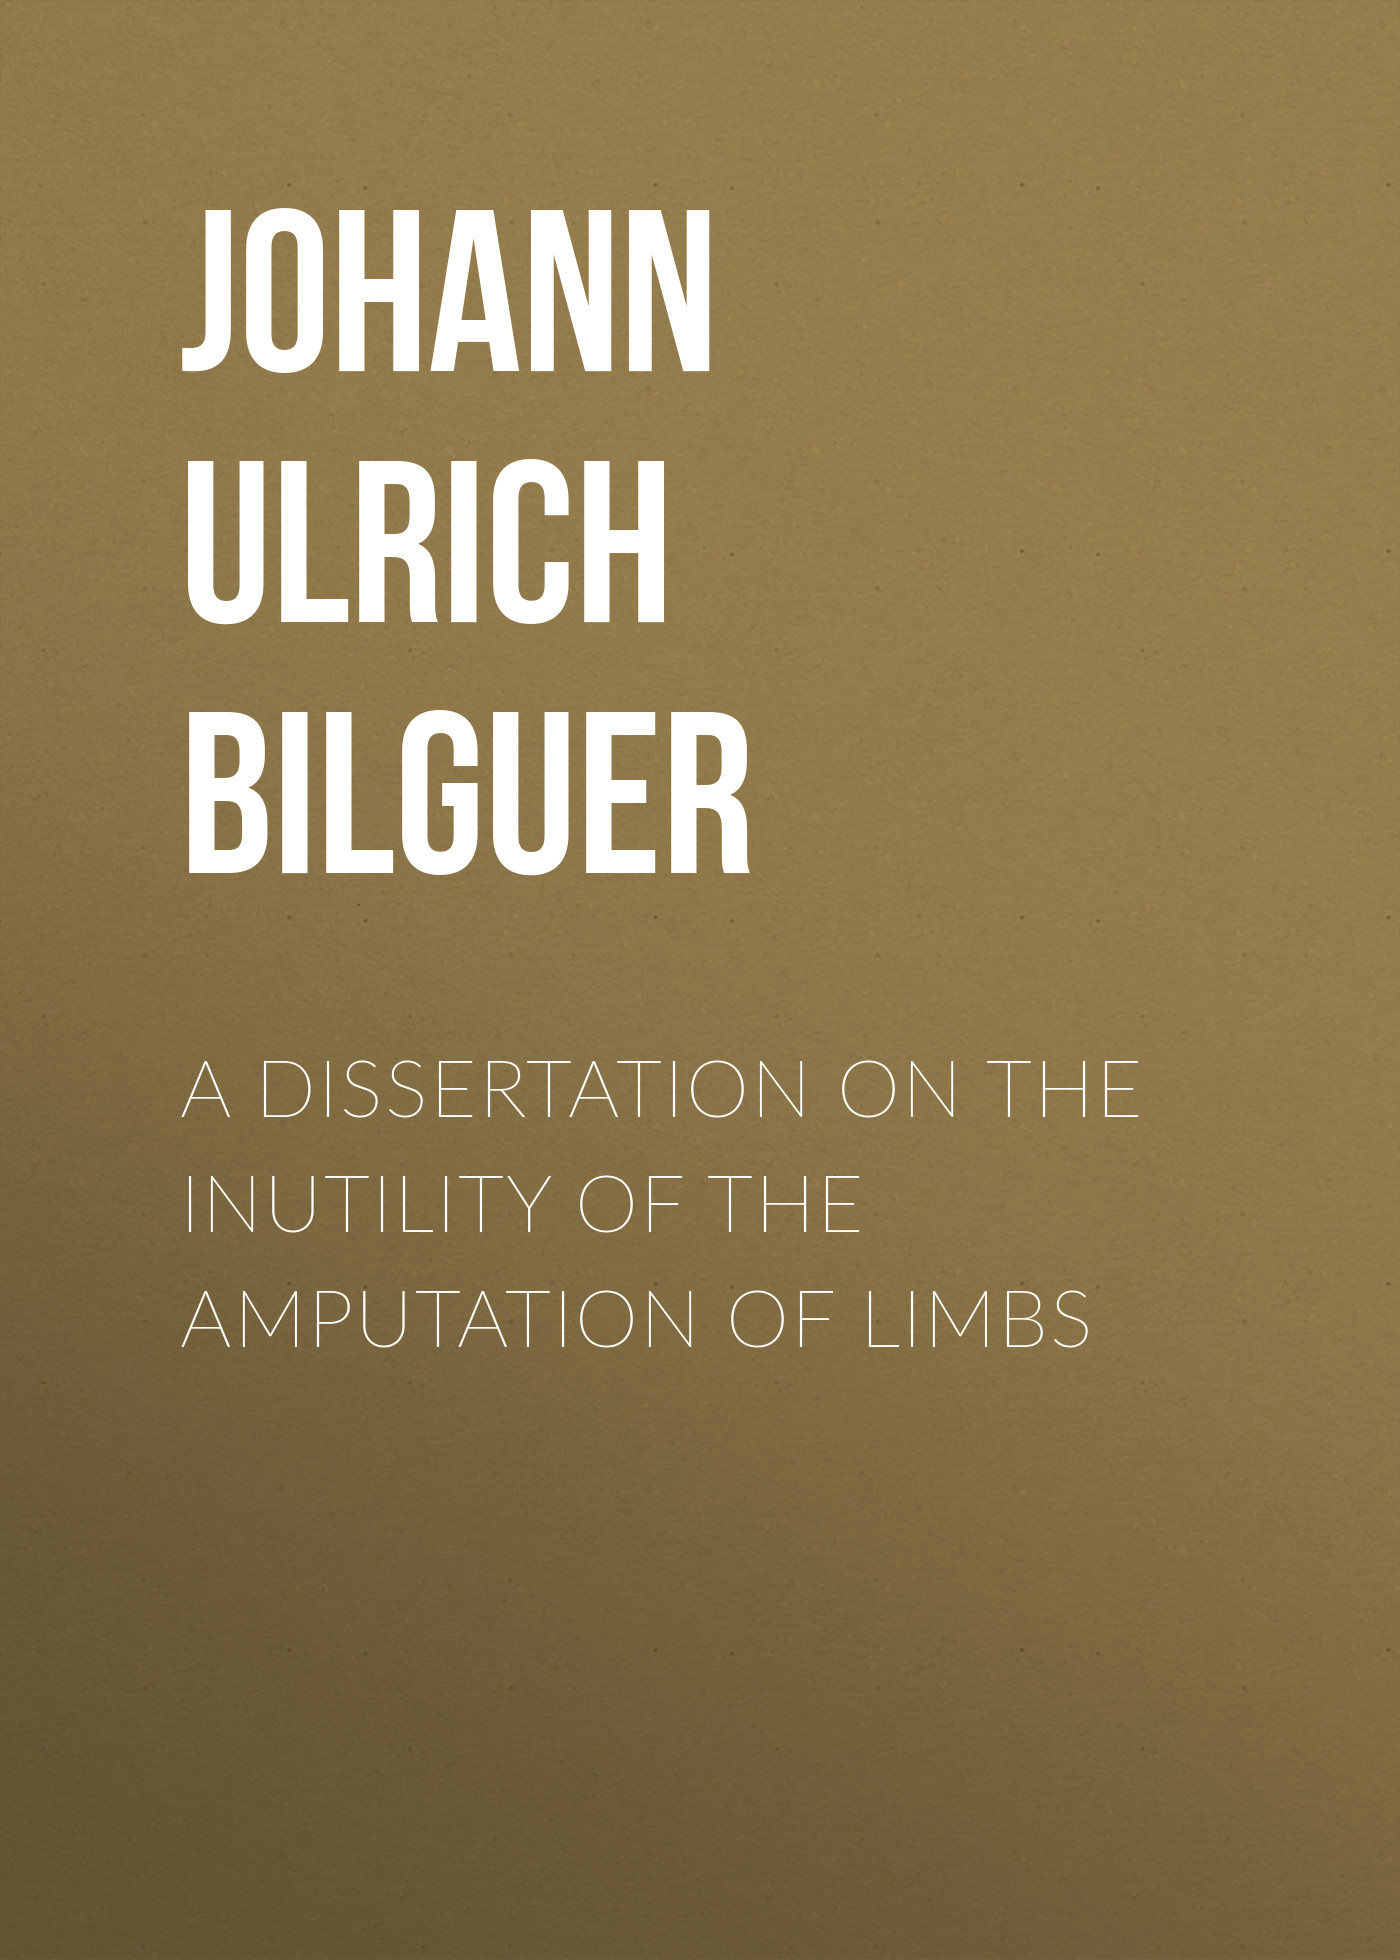 Johann Ulrich Bilguer A dissertation on the inutility of the amputation of limbs effect of fruits of opuntia ficus indica on hemolytic anemia